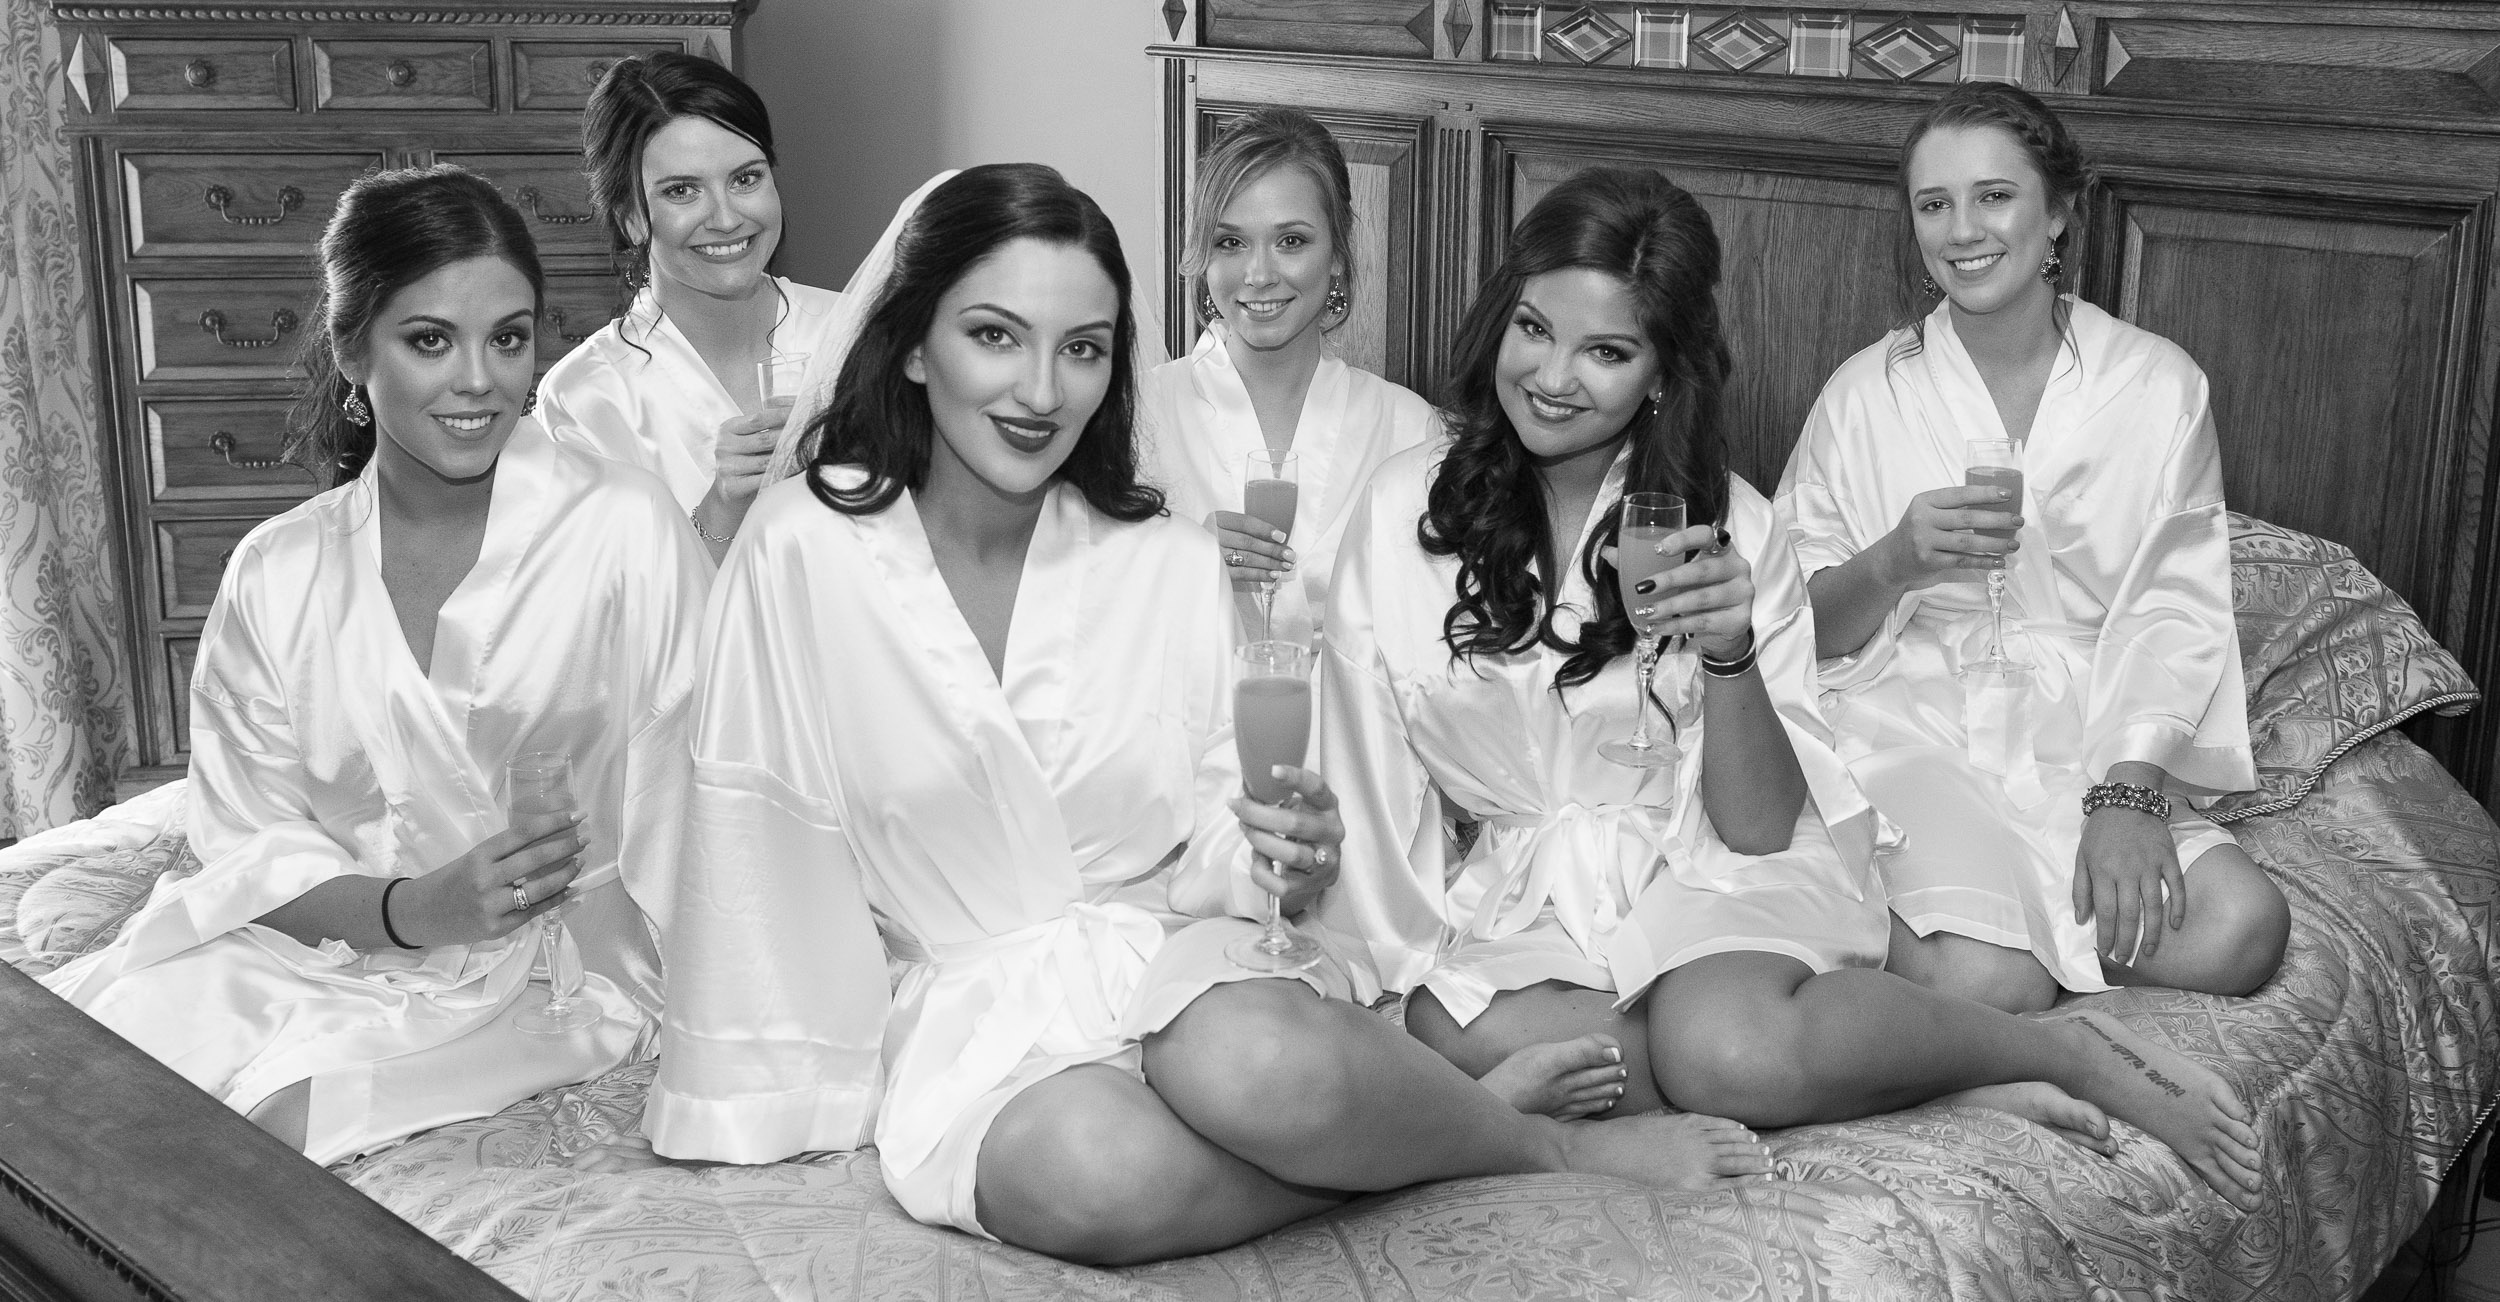 Bride-and-Bridesmaids-on-bed-portrait-2.jpg